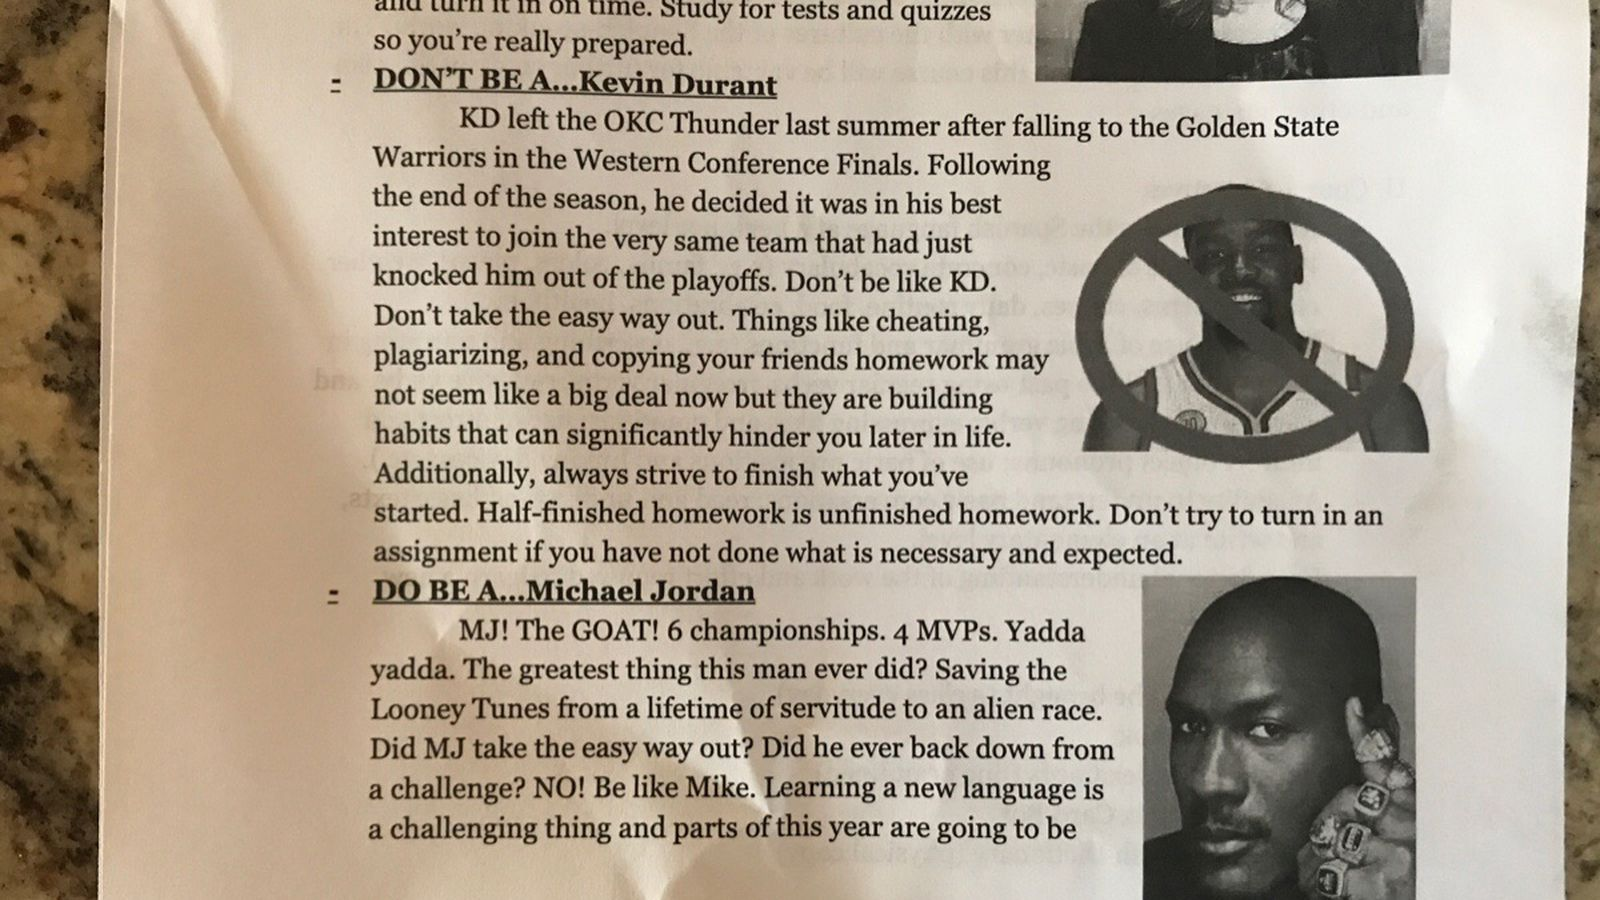 Teacher used handout to tell students to be like Michael Jordan, not Kevin Durant